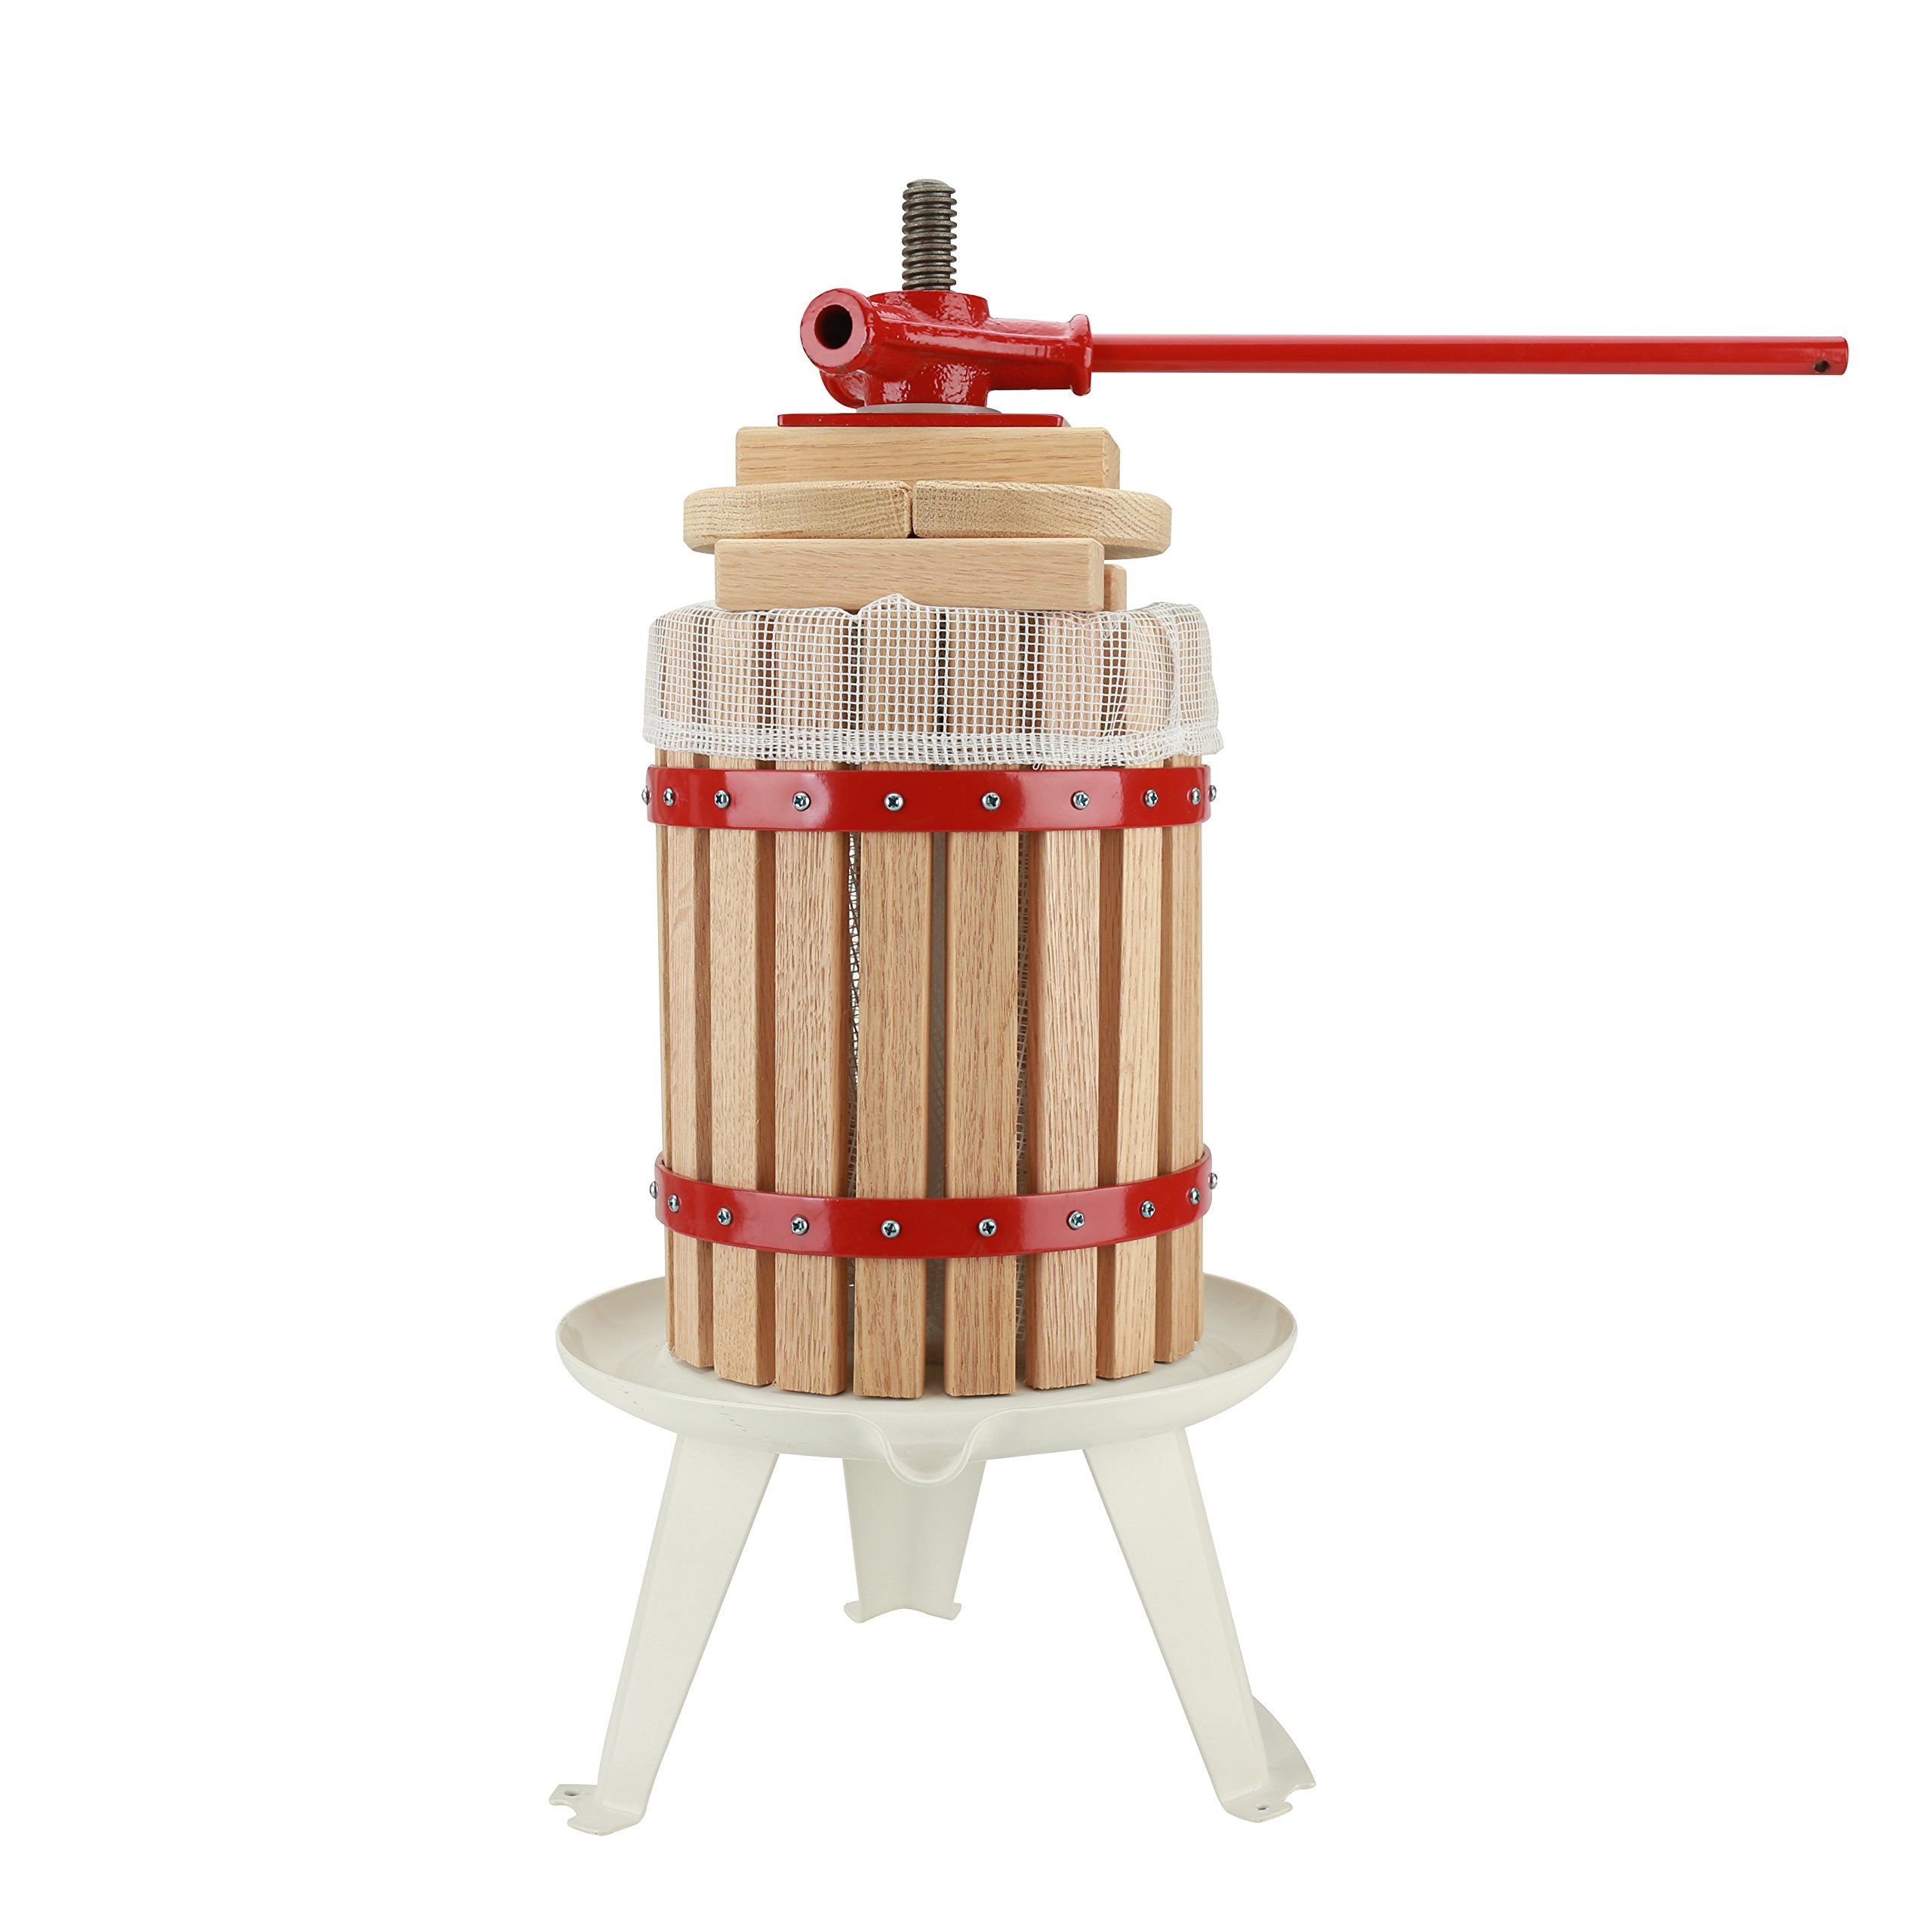 Fruit Wine Press 4.75 Gallon Cider Apple Grape Crusher Juice Maker With Solid Wood Basket by TheBesTeam